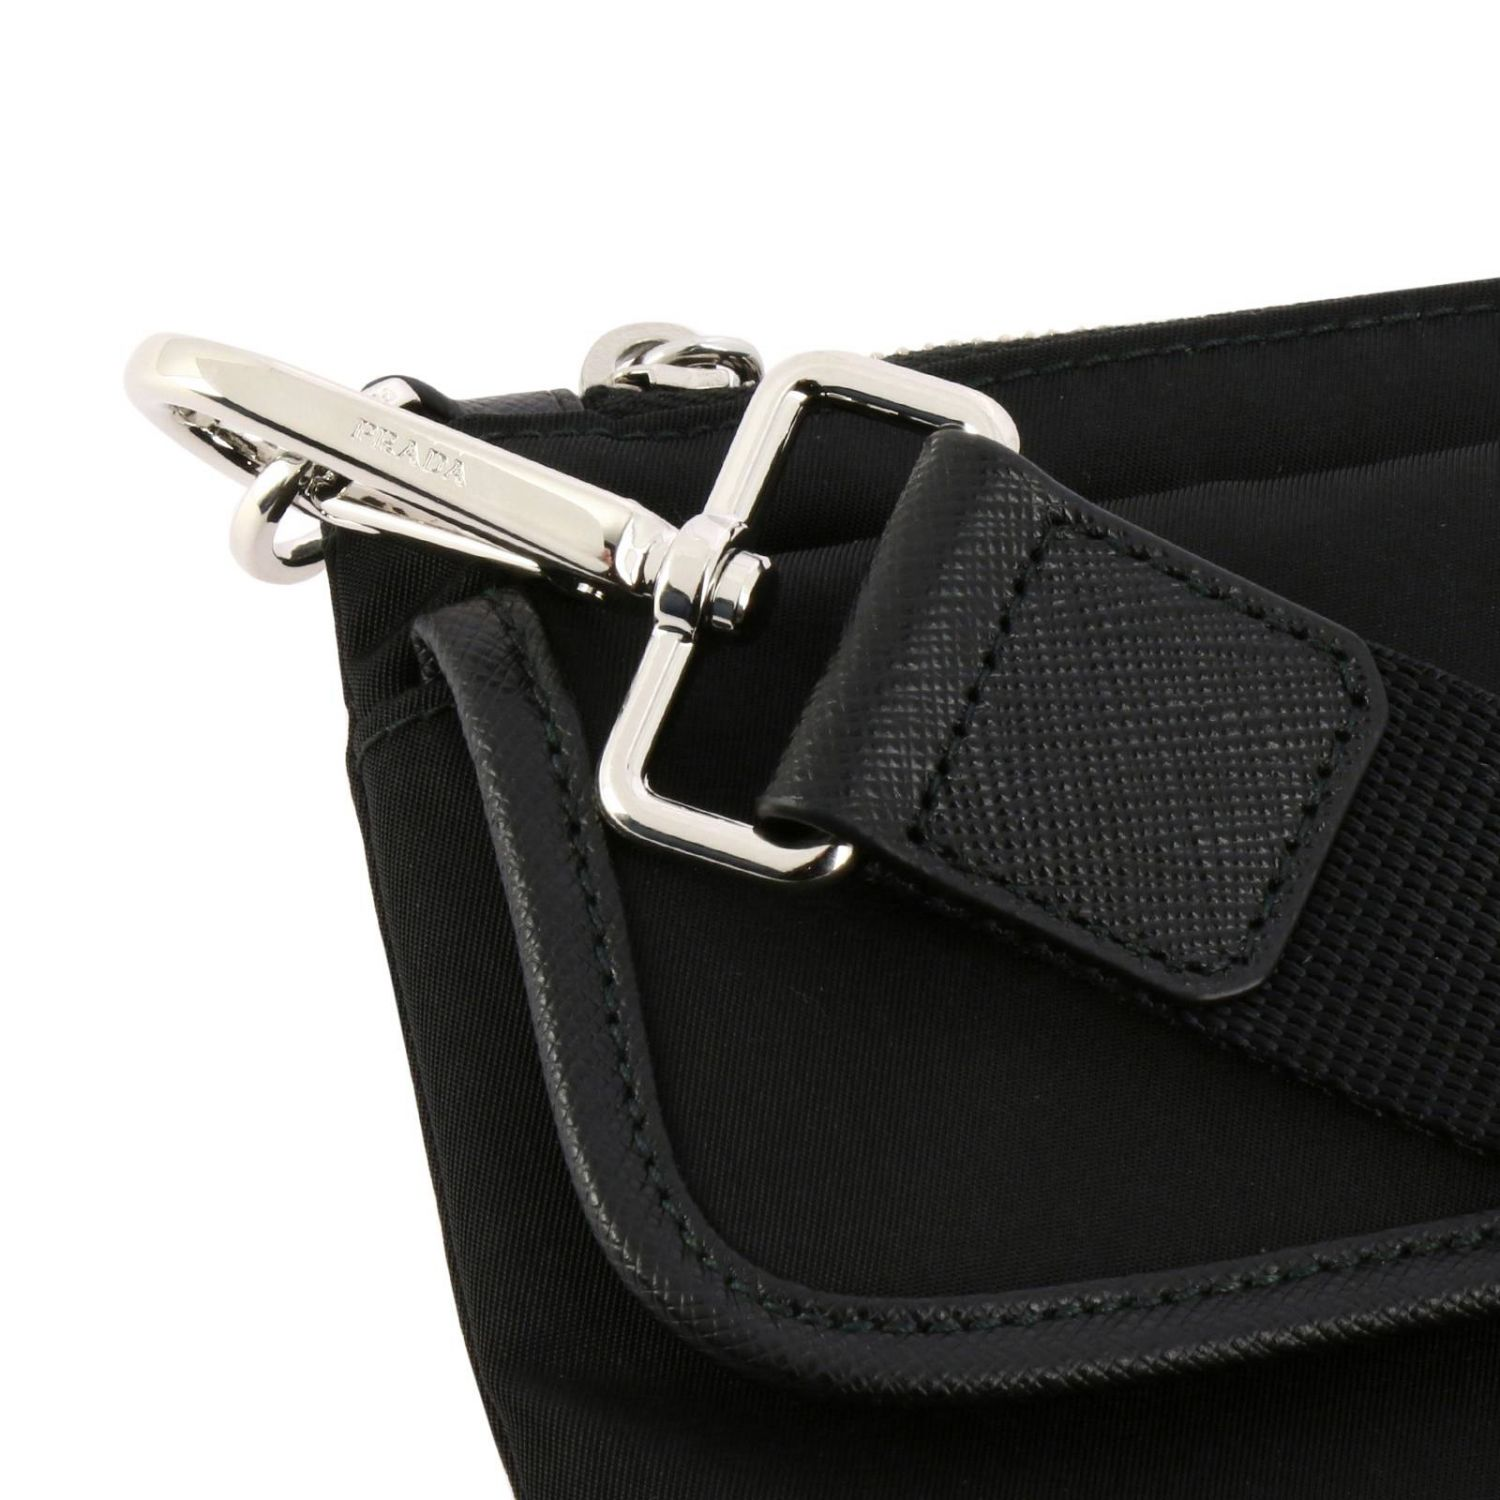 Prada nylon clutch bag with triangular logo and buckle black 4